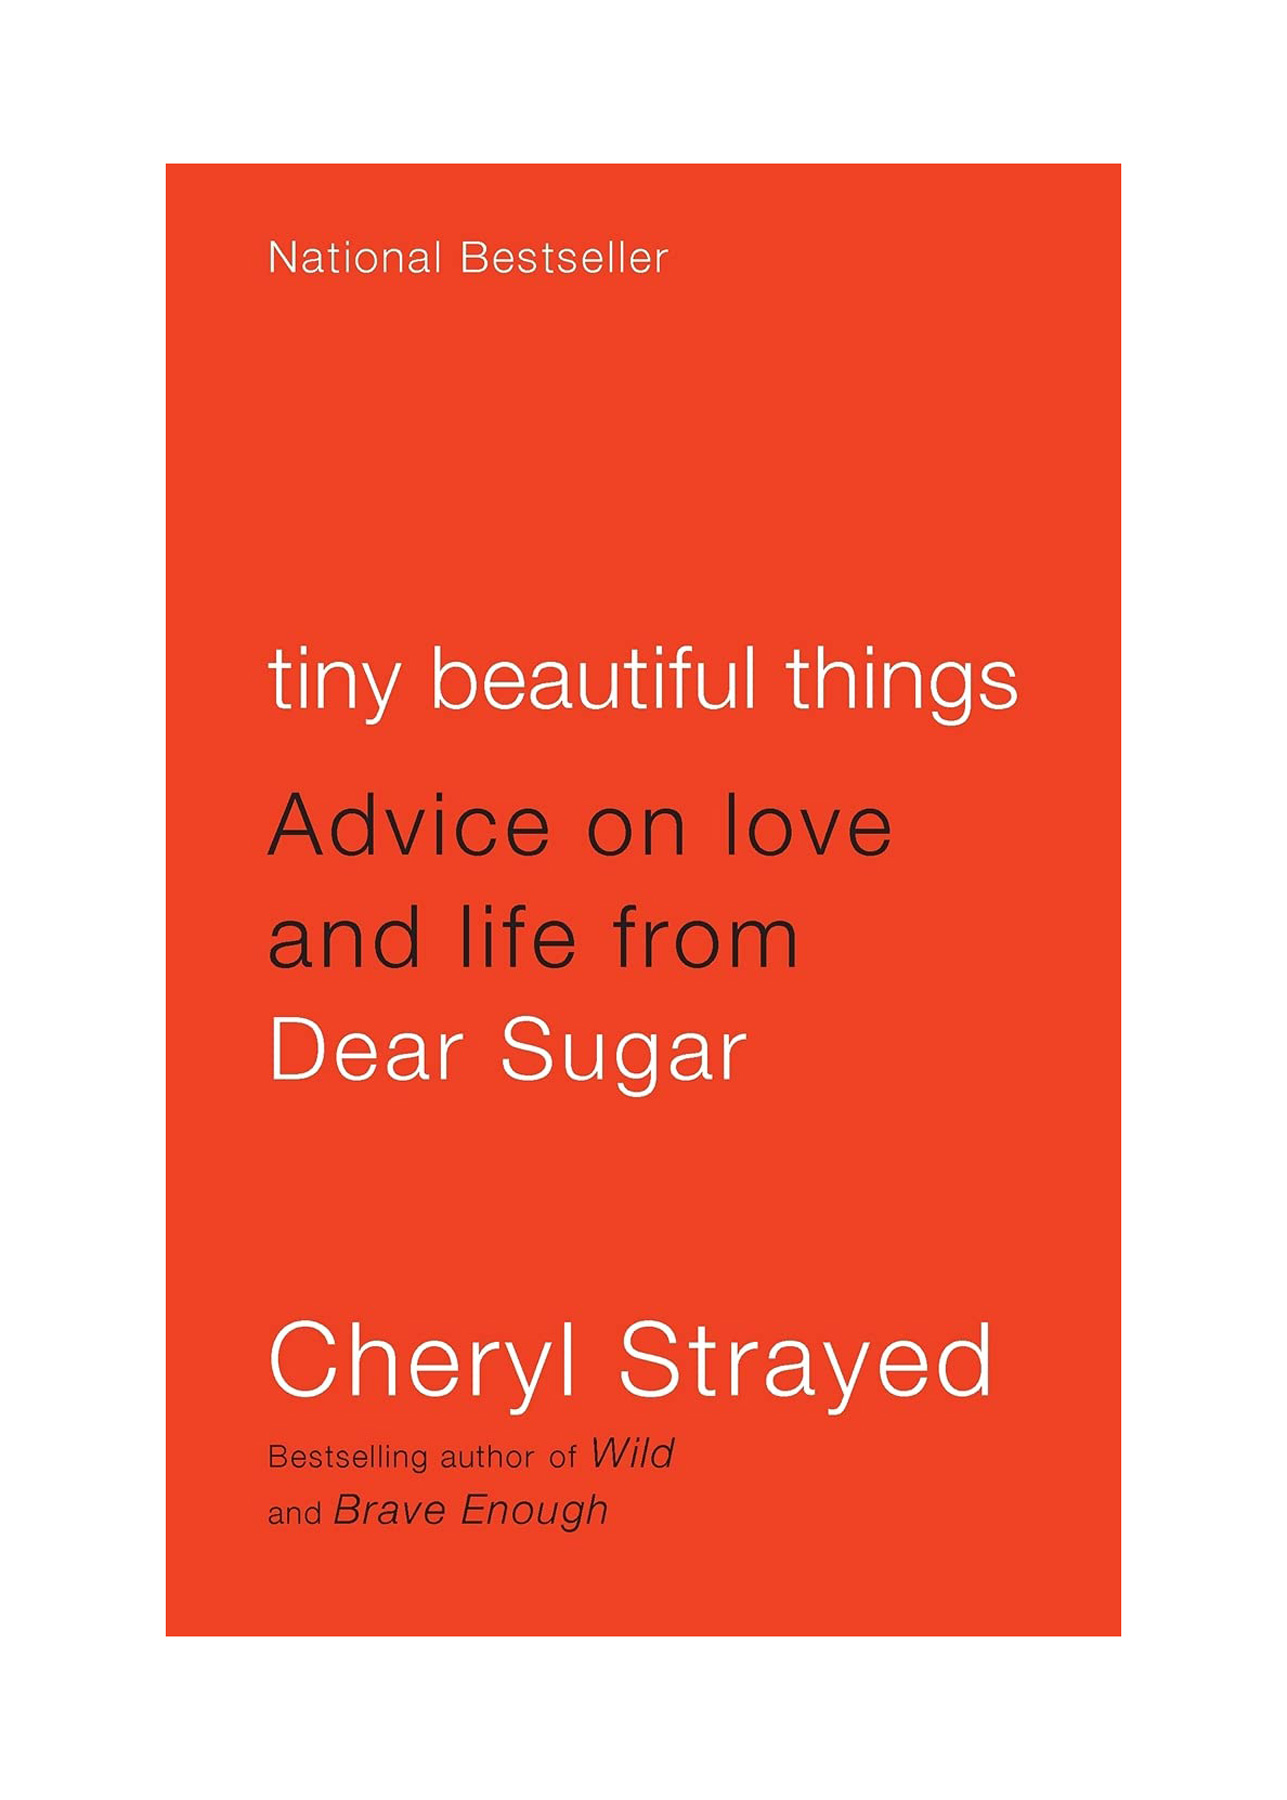 Books for Breakups: Tiny Beautiful Things: Advice on Love and Life from Dear Sugar by Cheryl Strayed